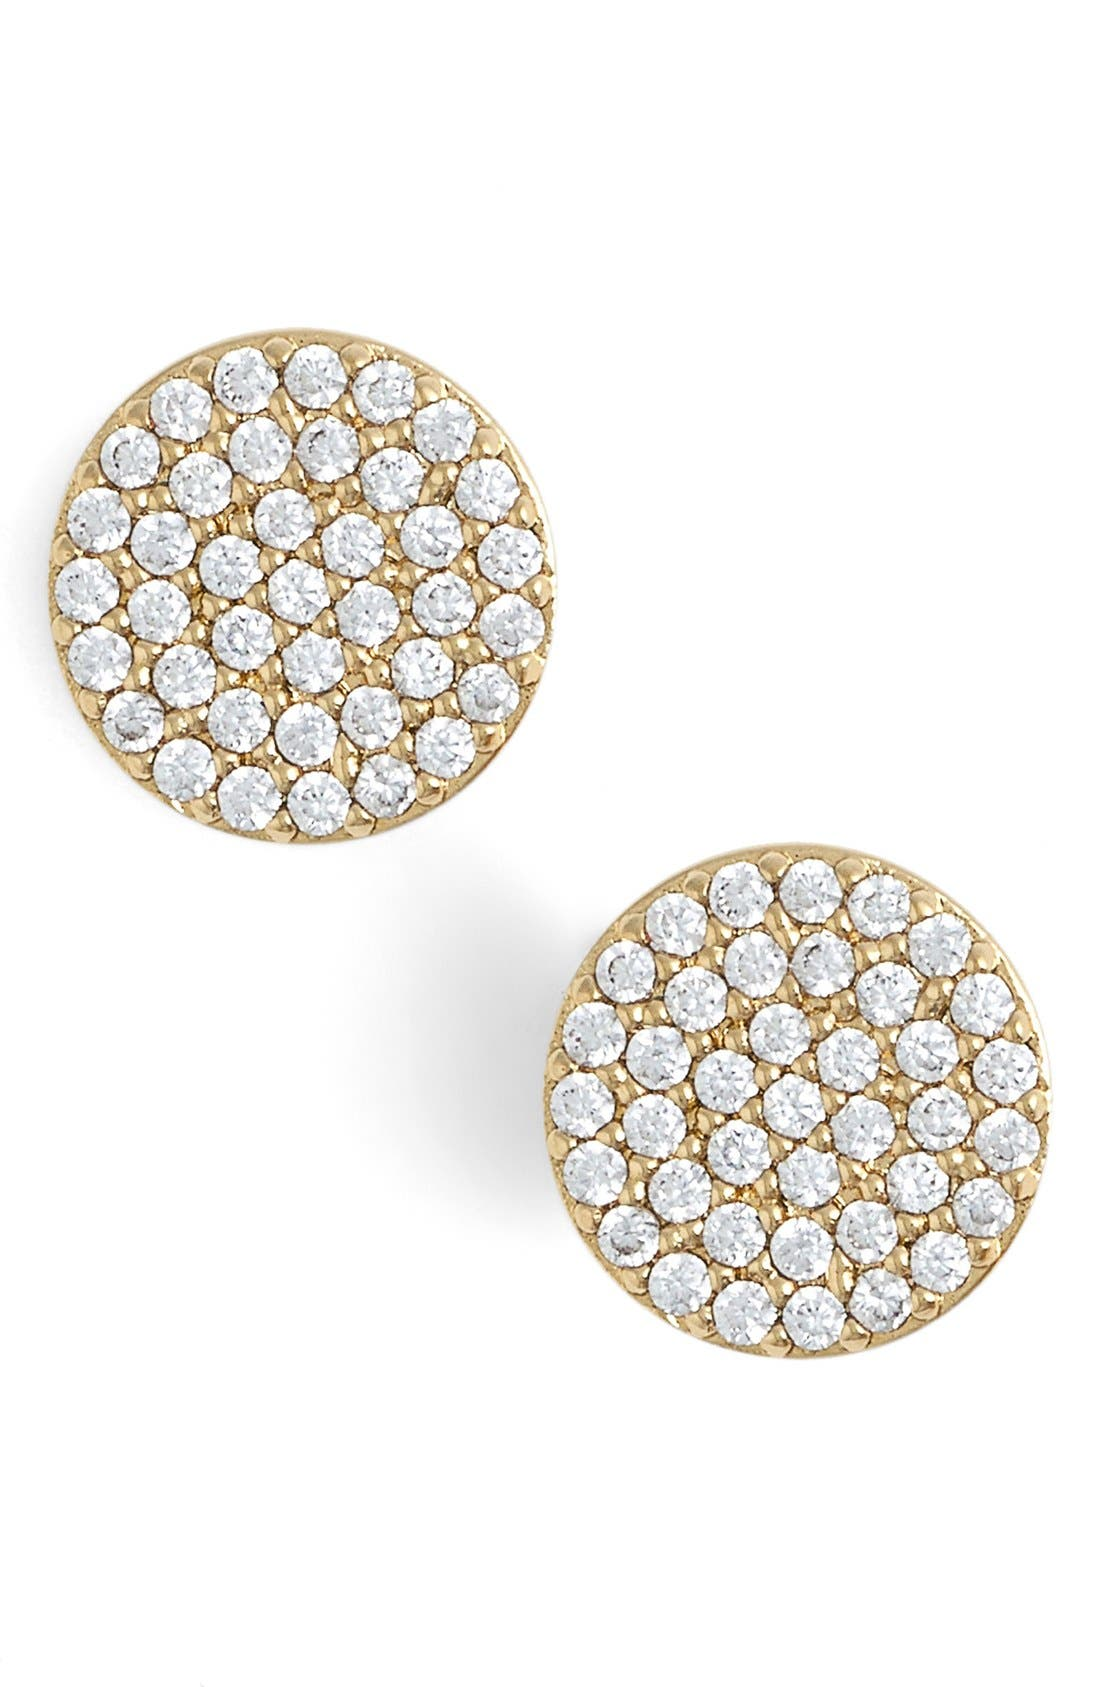 Alternate Image 1 Selected - Nadri 'Geo' Stud Earrings